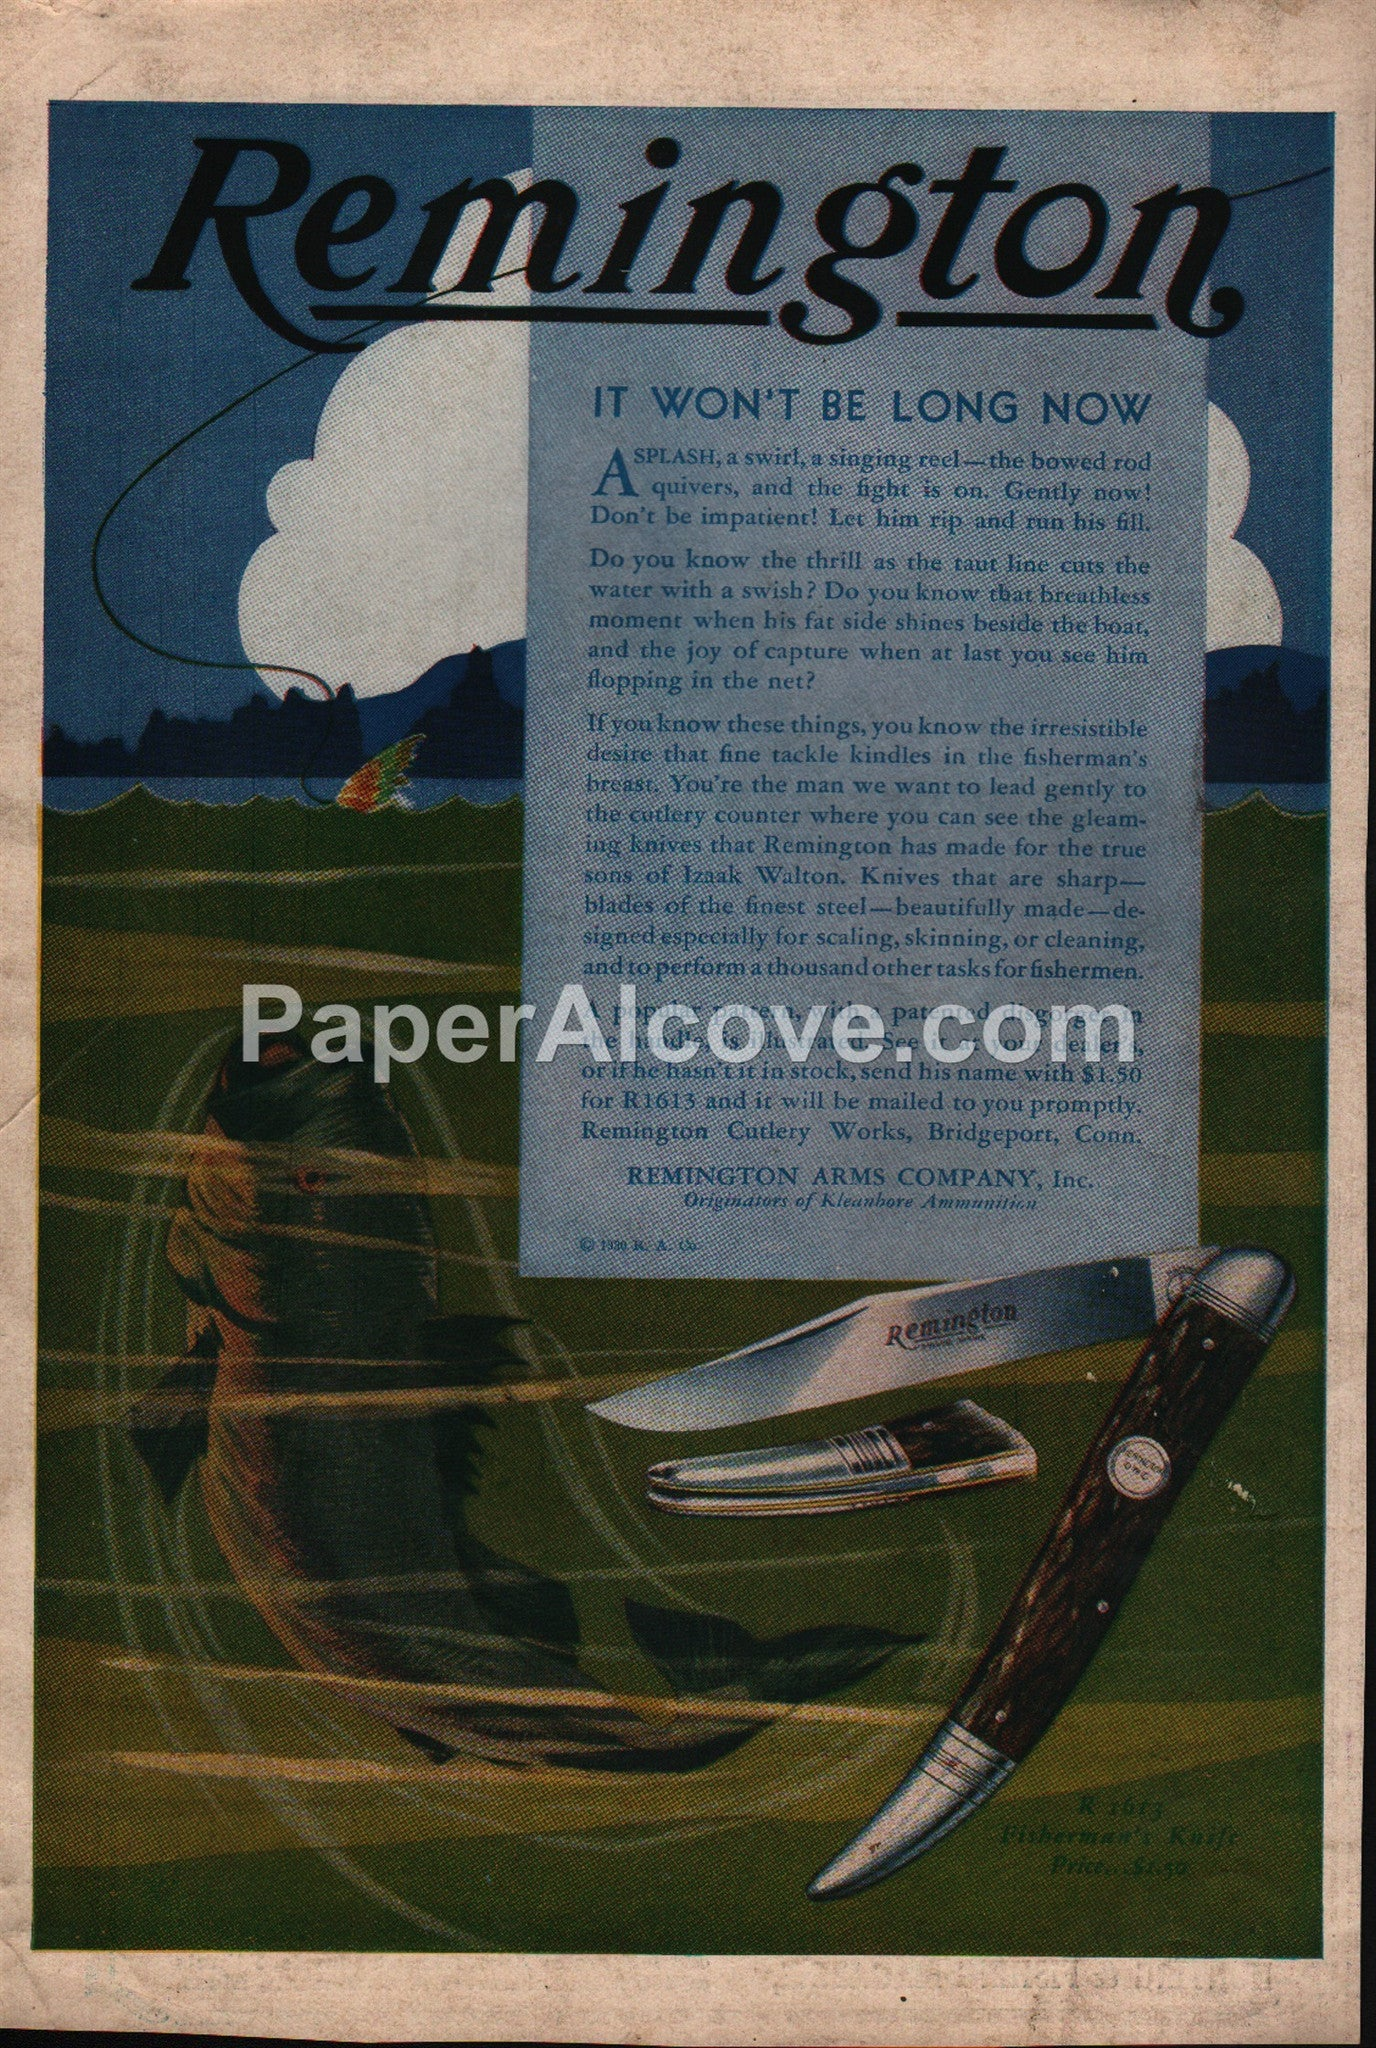 Remington R1613 Fisherman's Knife fishing knives 1930 vintage print ad